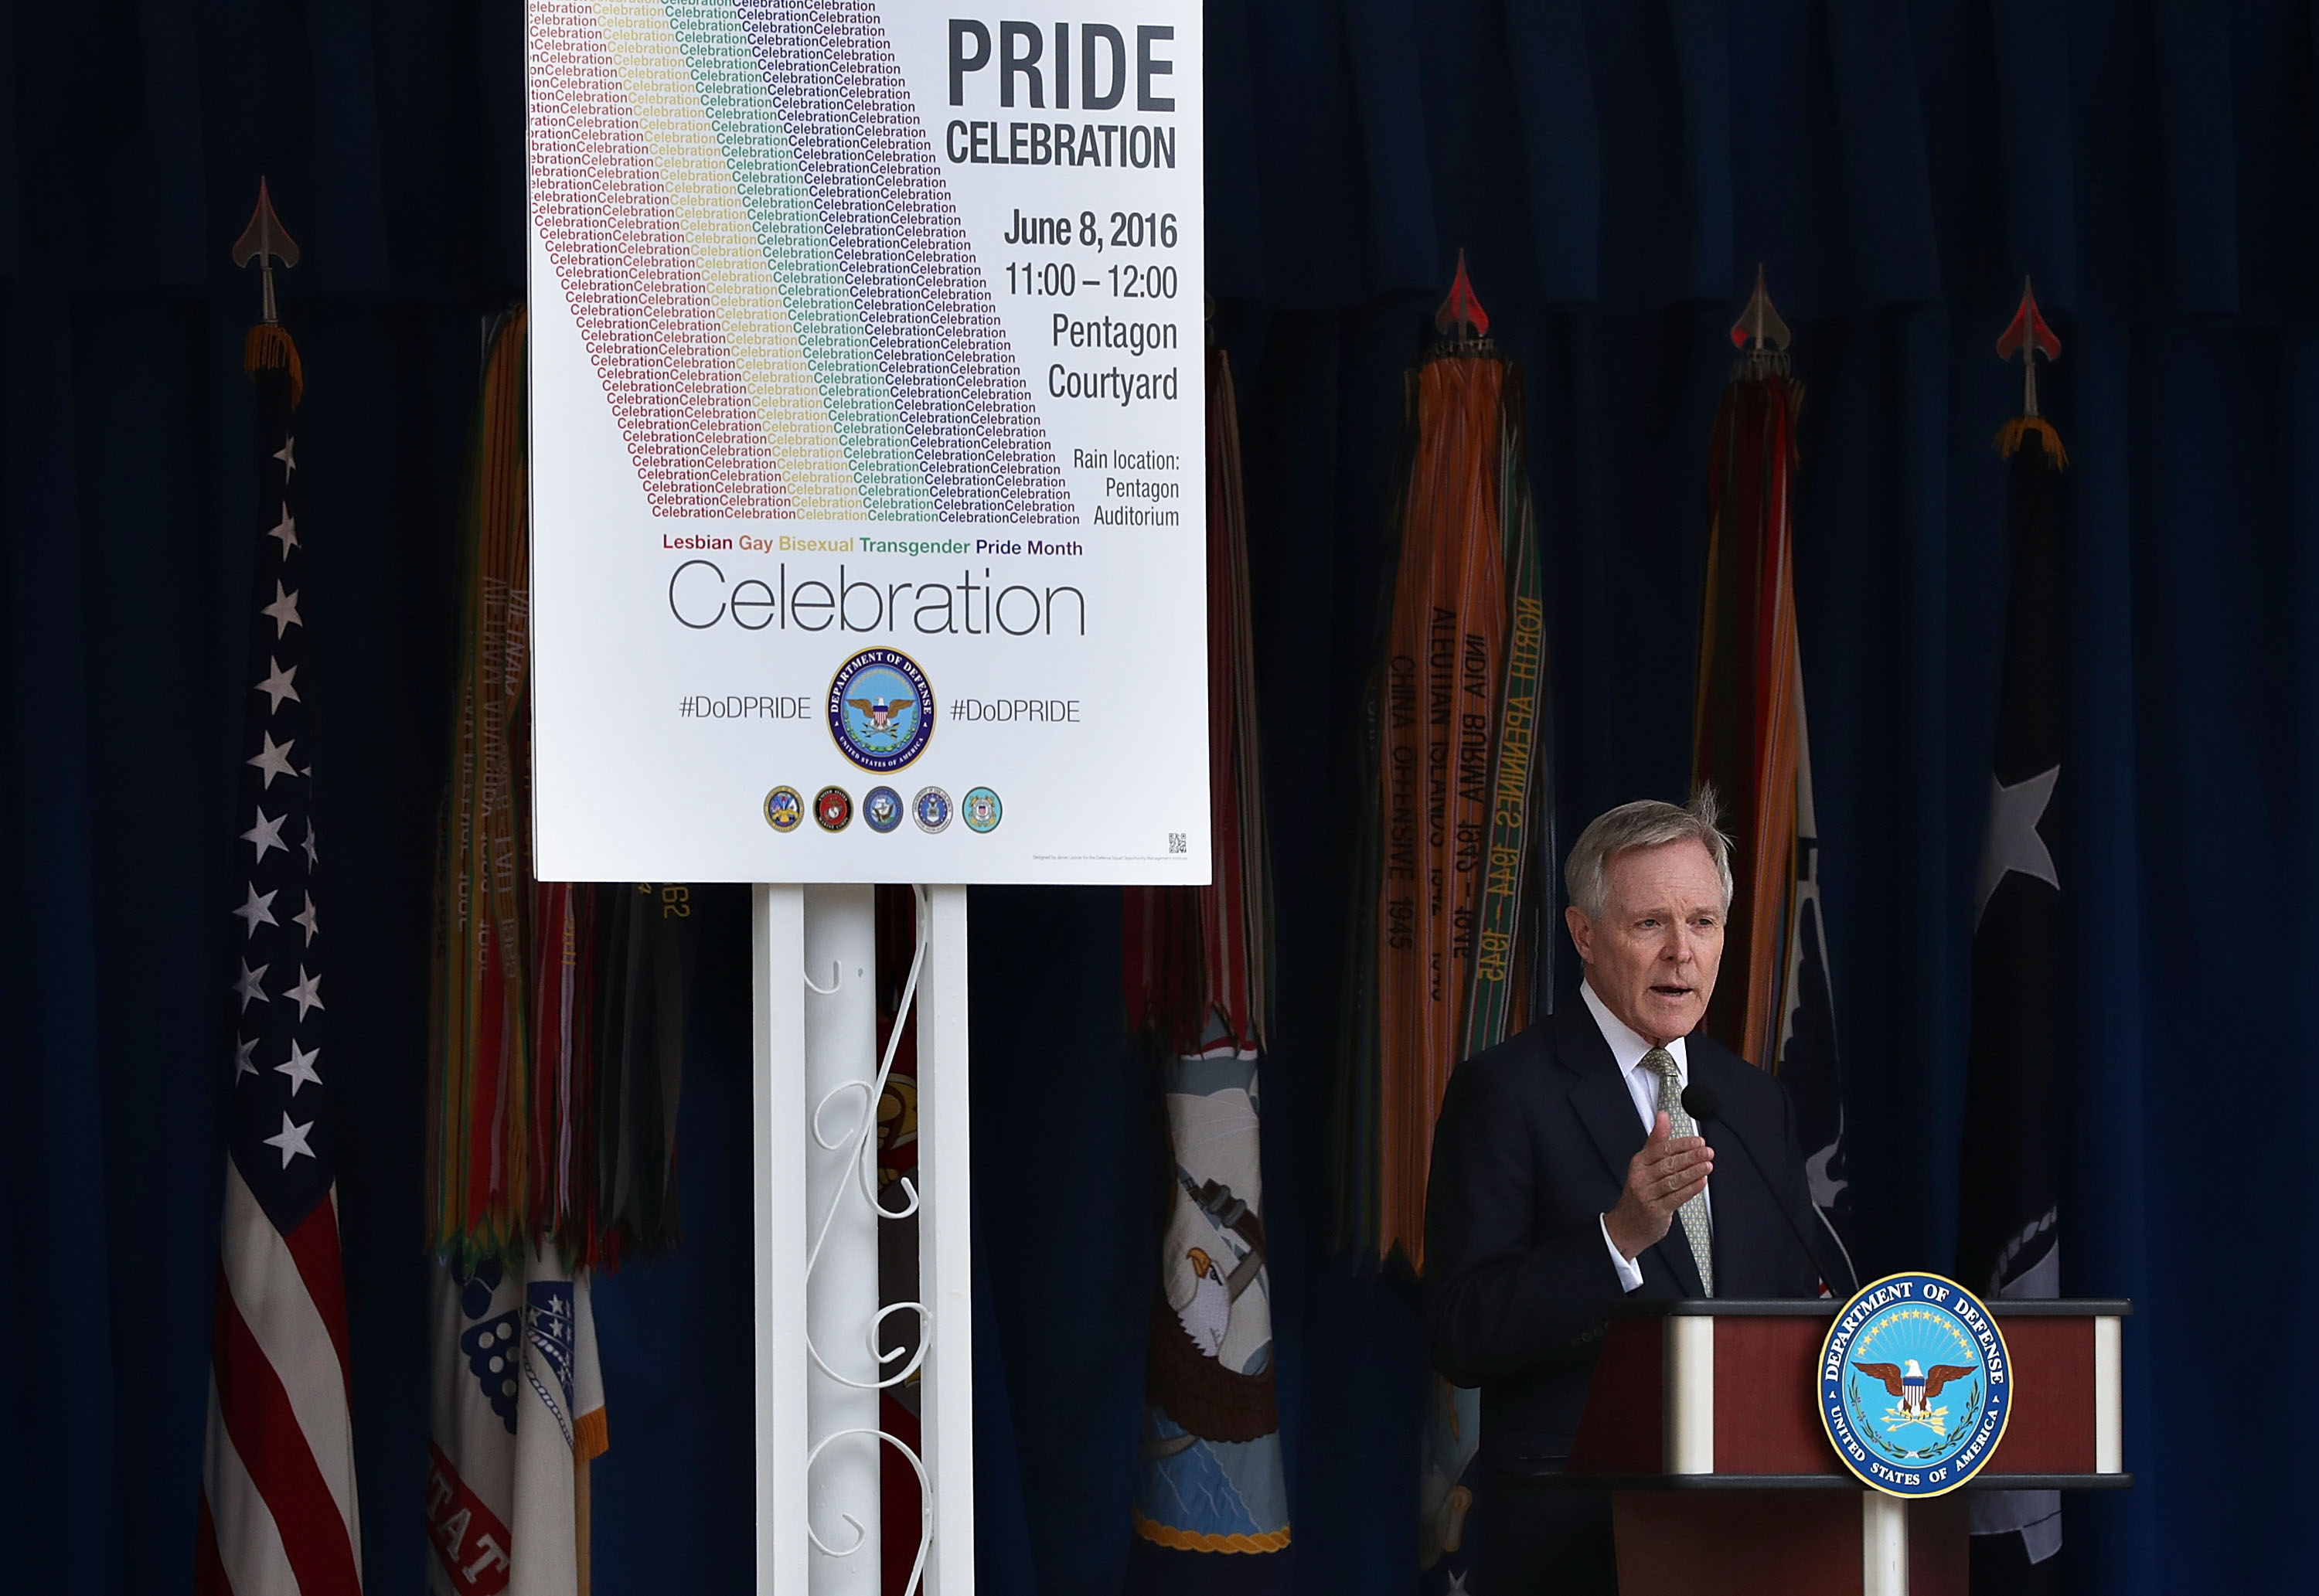 U.S. Navy Secretary Ray Mabus speaks during an LGBT Pride Month Ceremony at the Pentagon